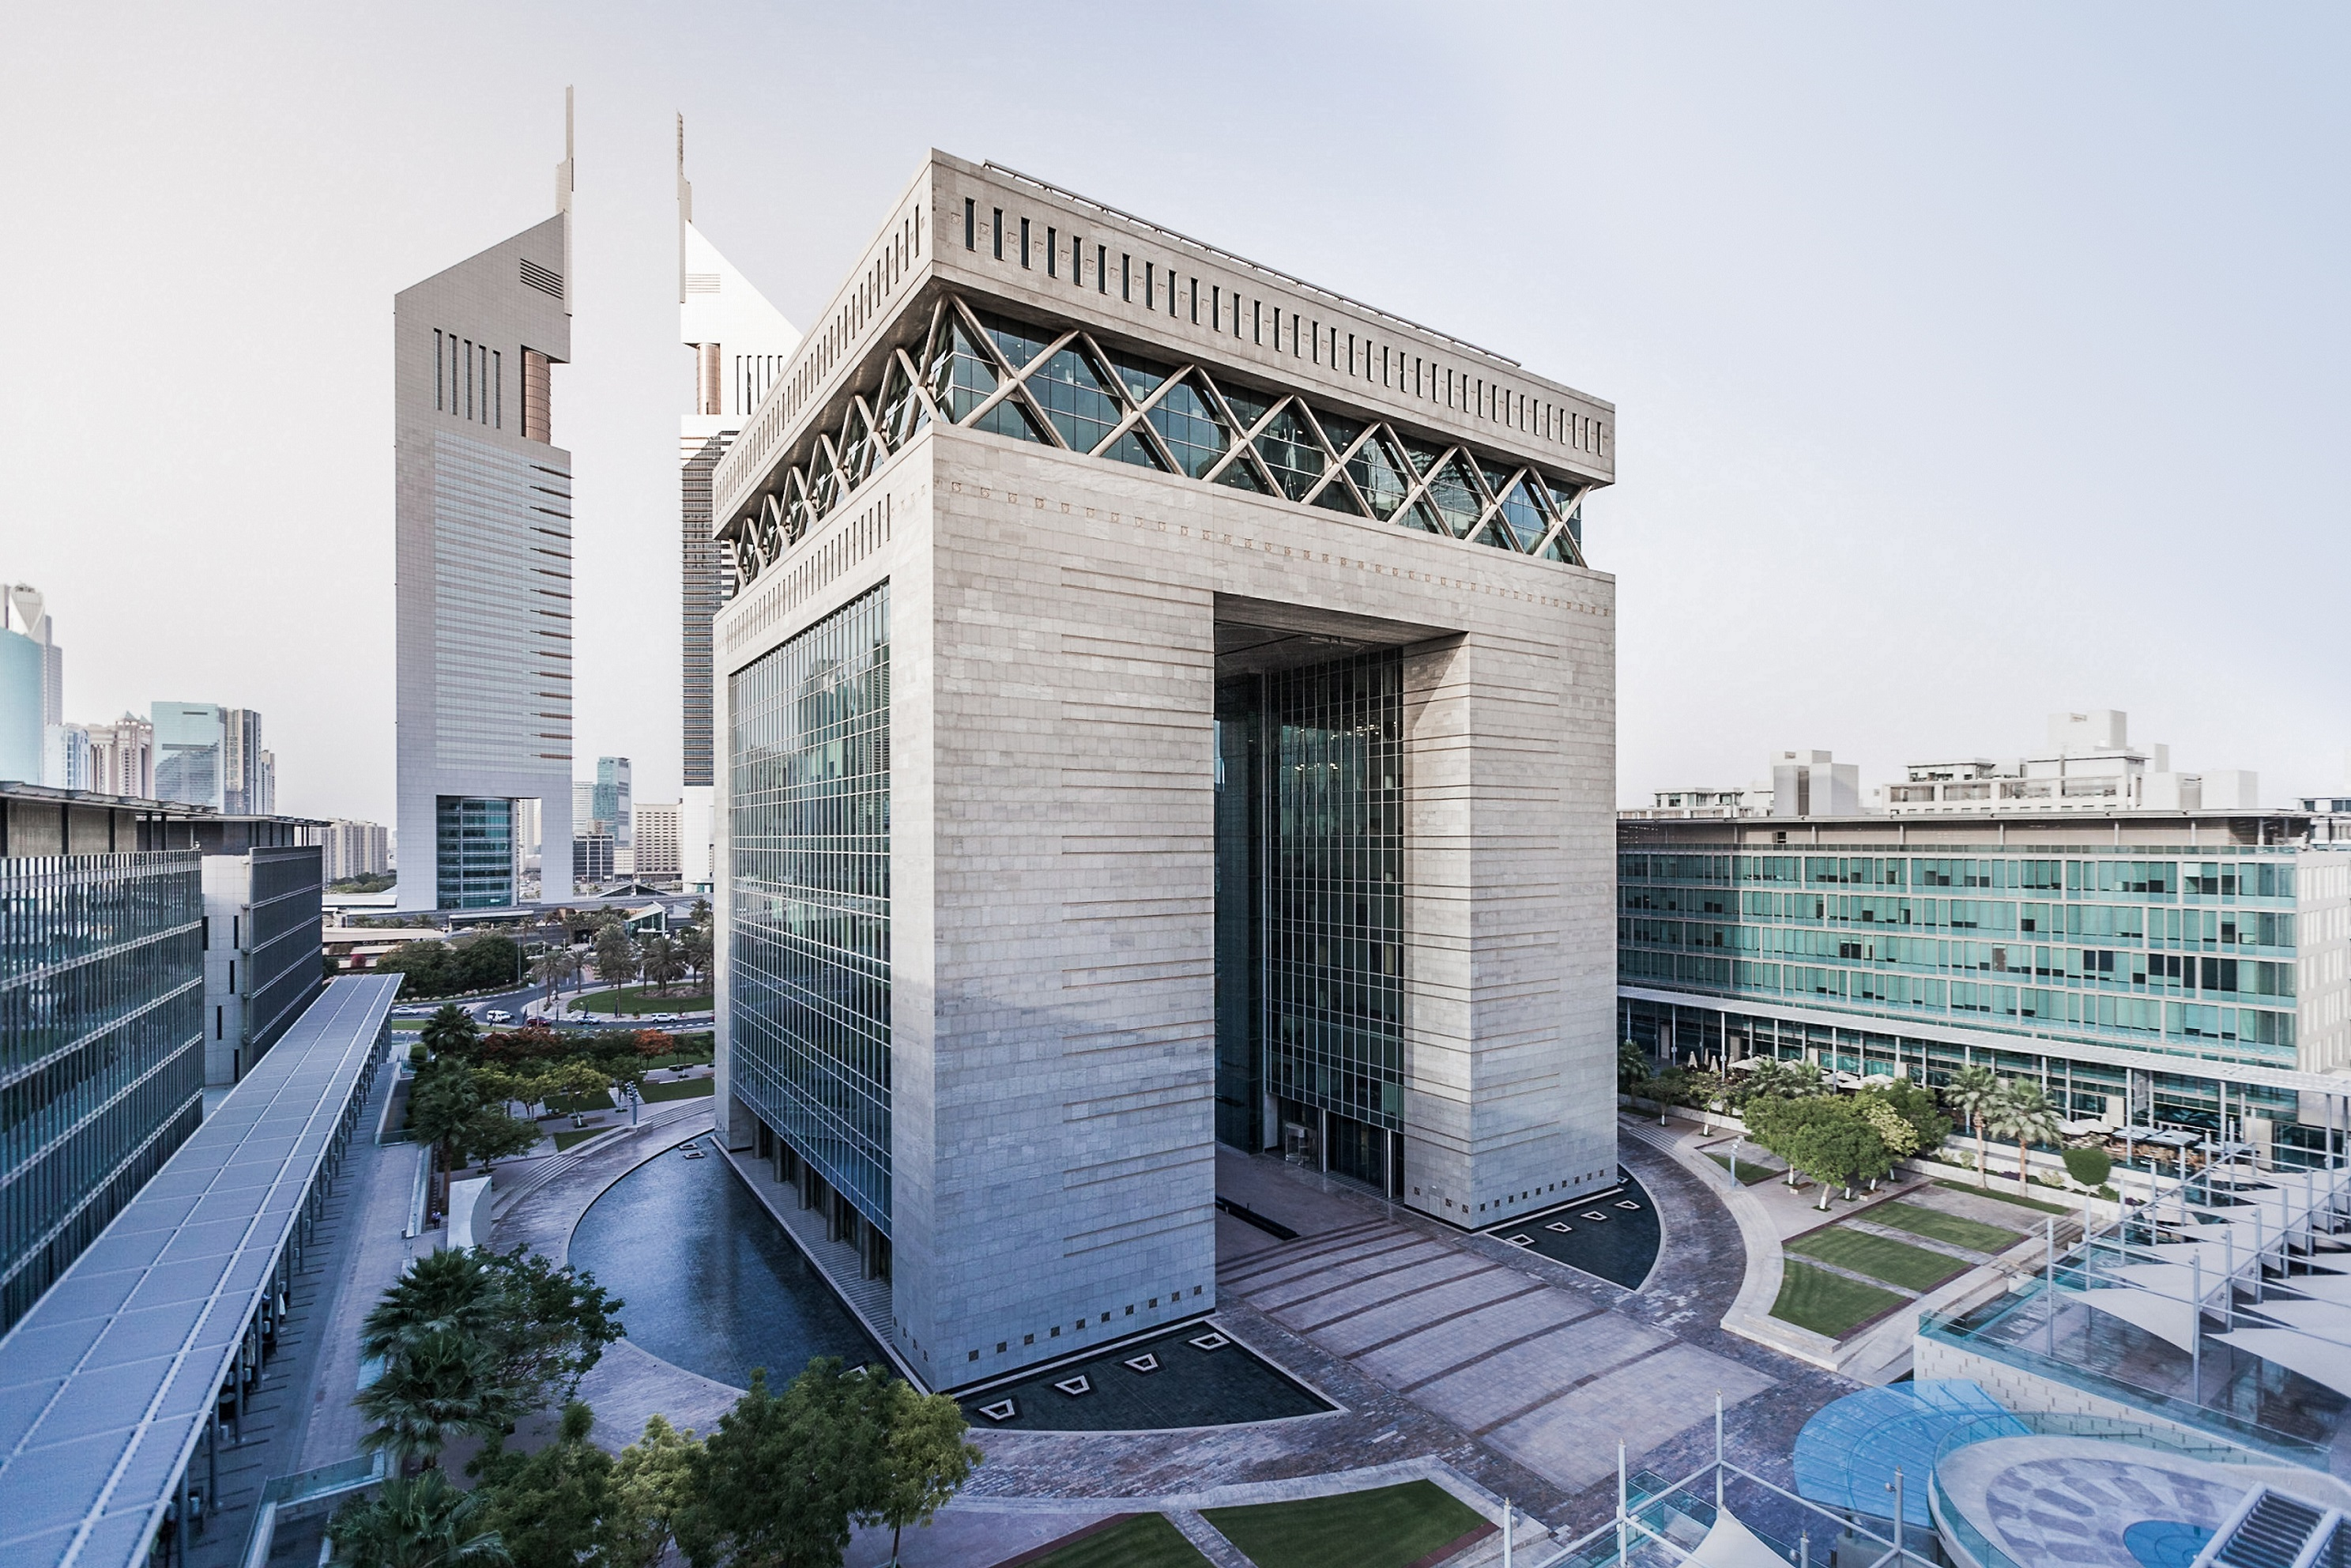 The Dubai International Financial Center adopts new regulatory frameworks to protect companies and employees